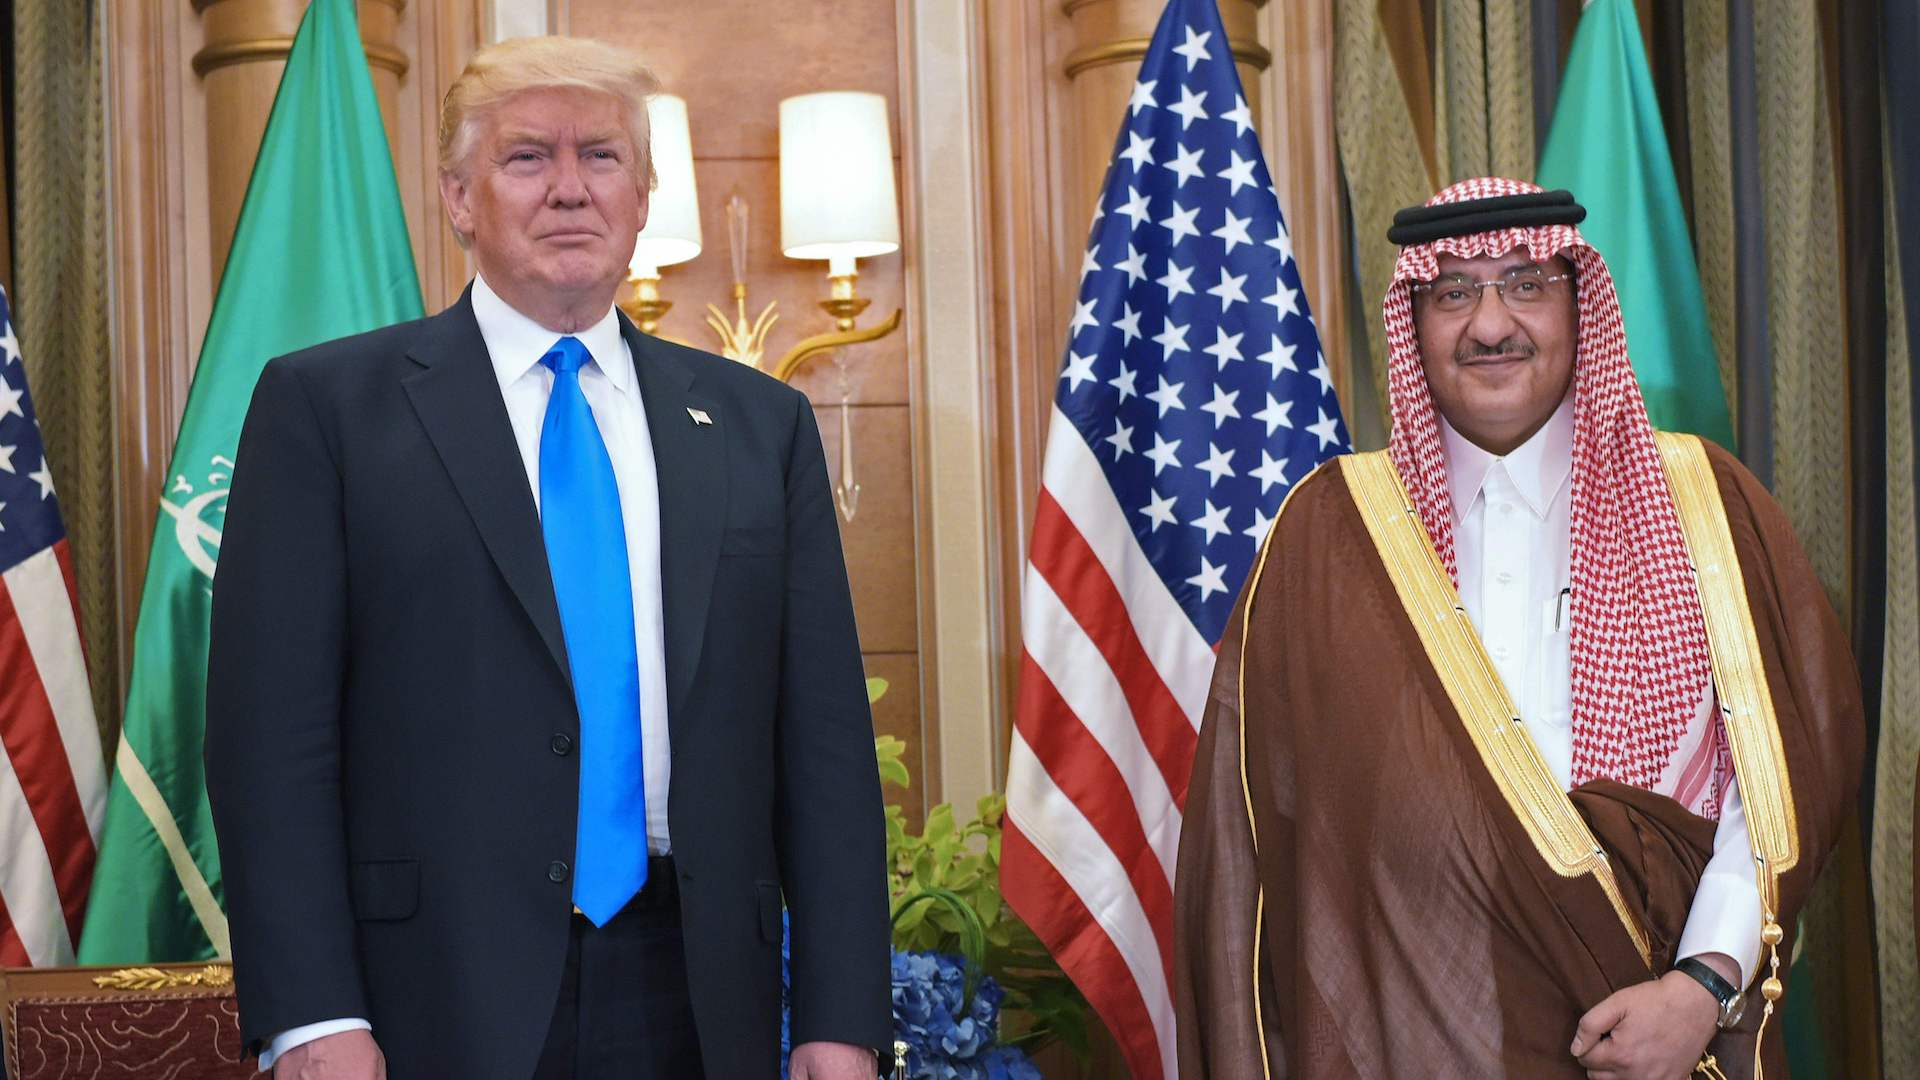 Trump signs 'tremendous' deals with Saudi Arabia on his first day overseas